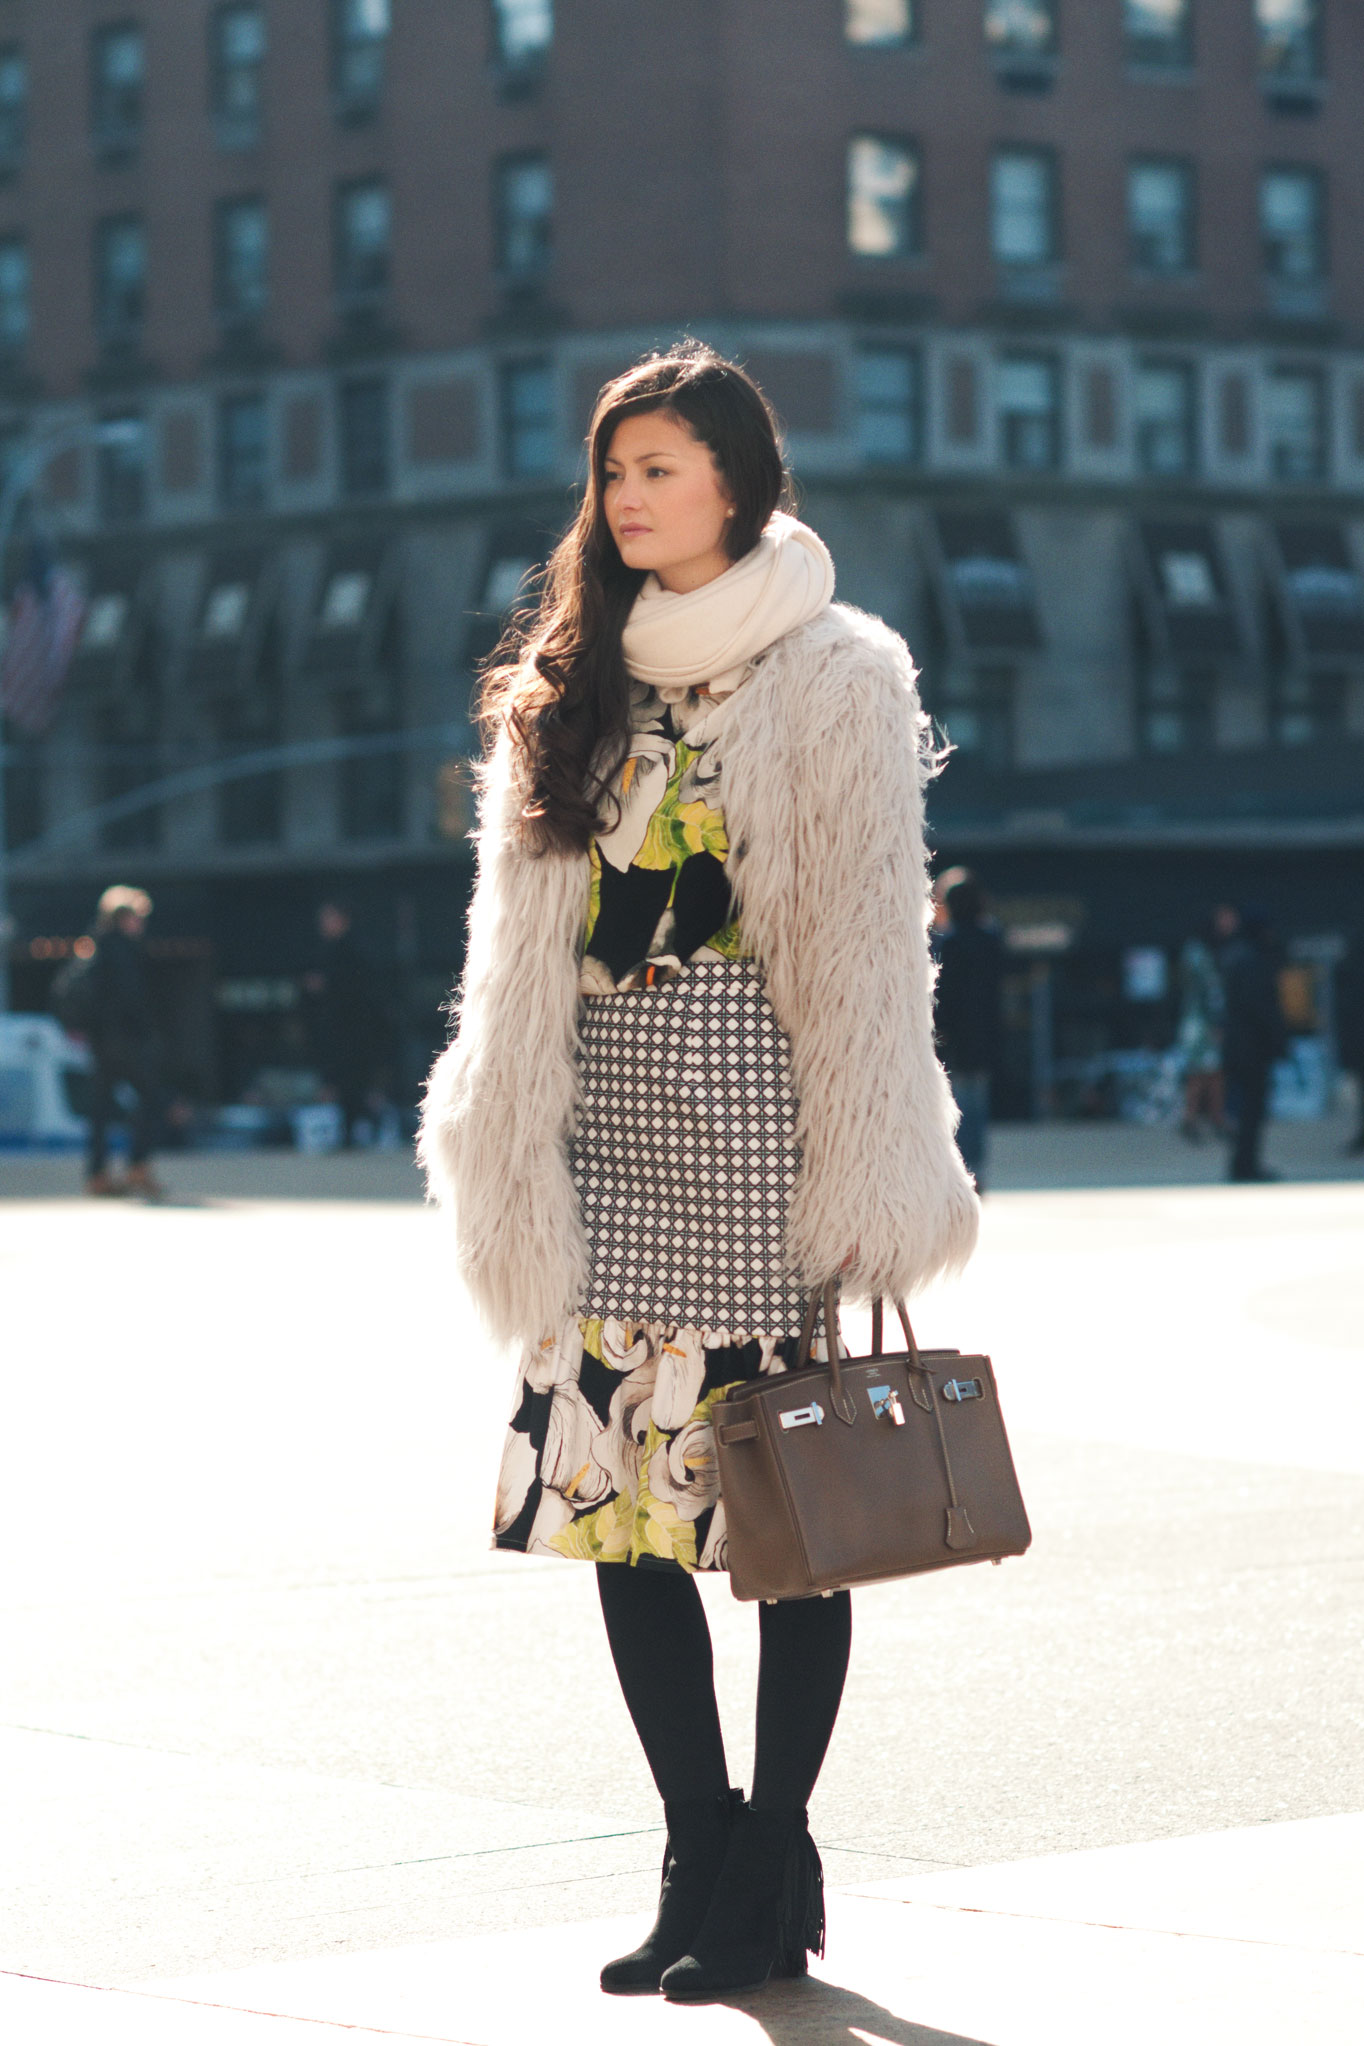 Peony Lim at New York Fashion Week Fall/Winter 2013